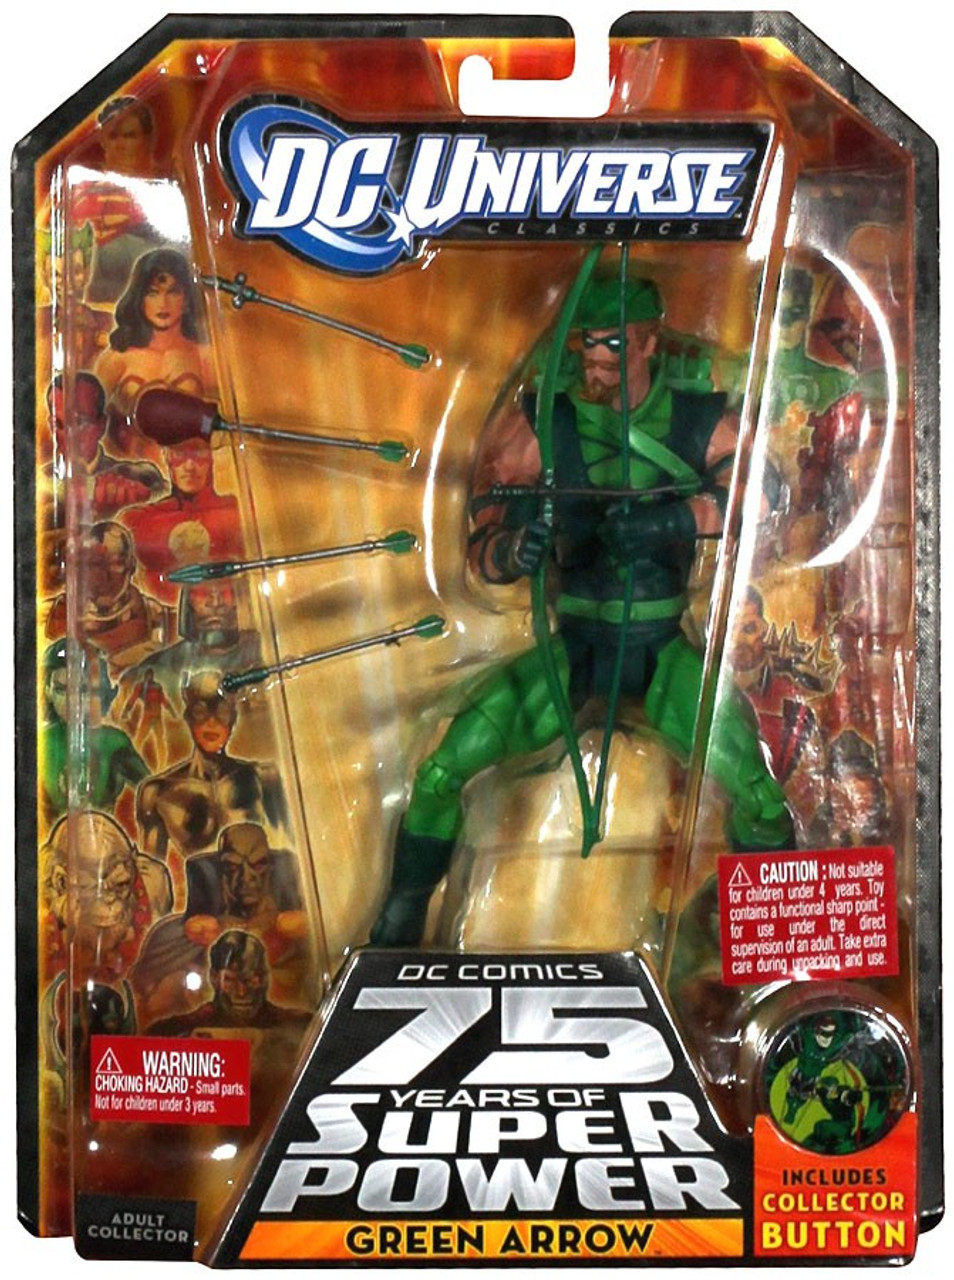 DC Universe 75 Years of Super Power Classics Green Arrow Action Figure